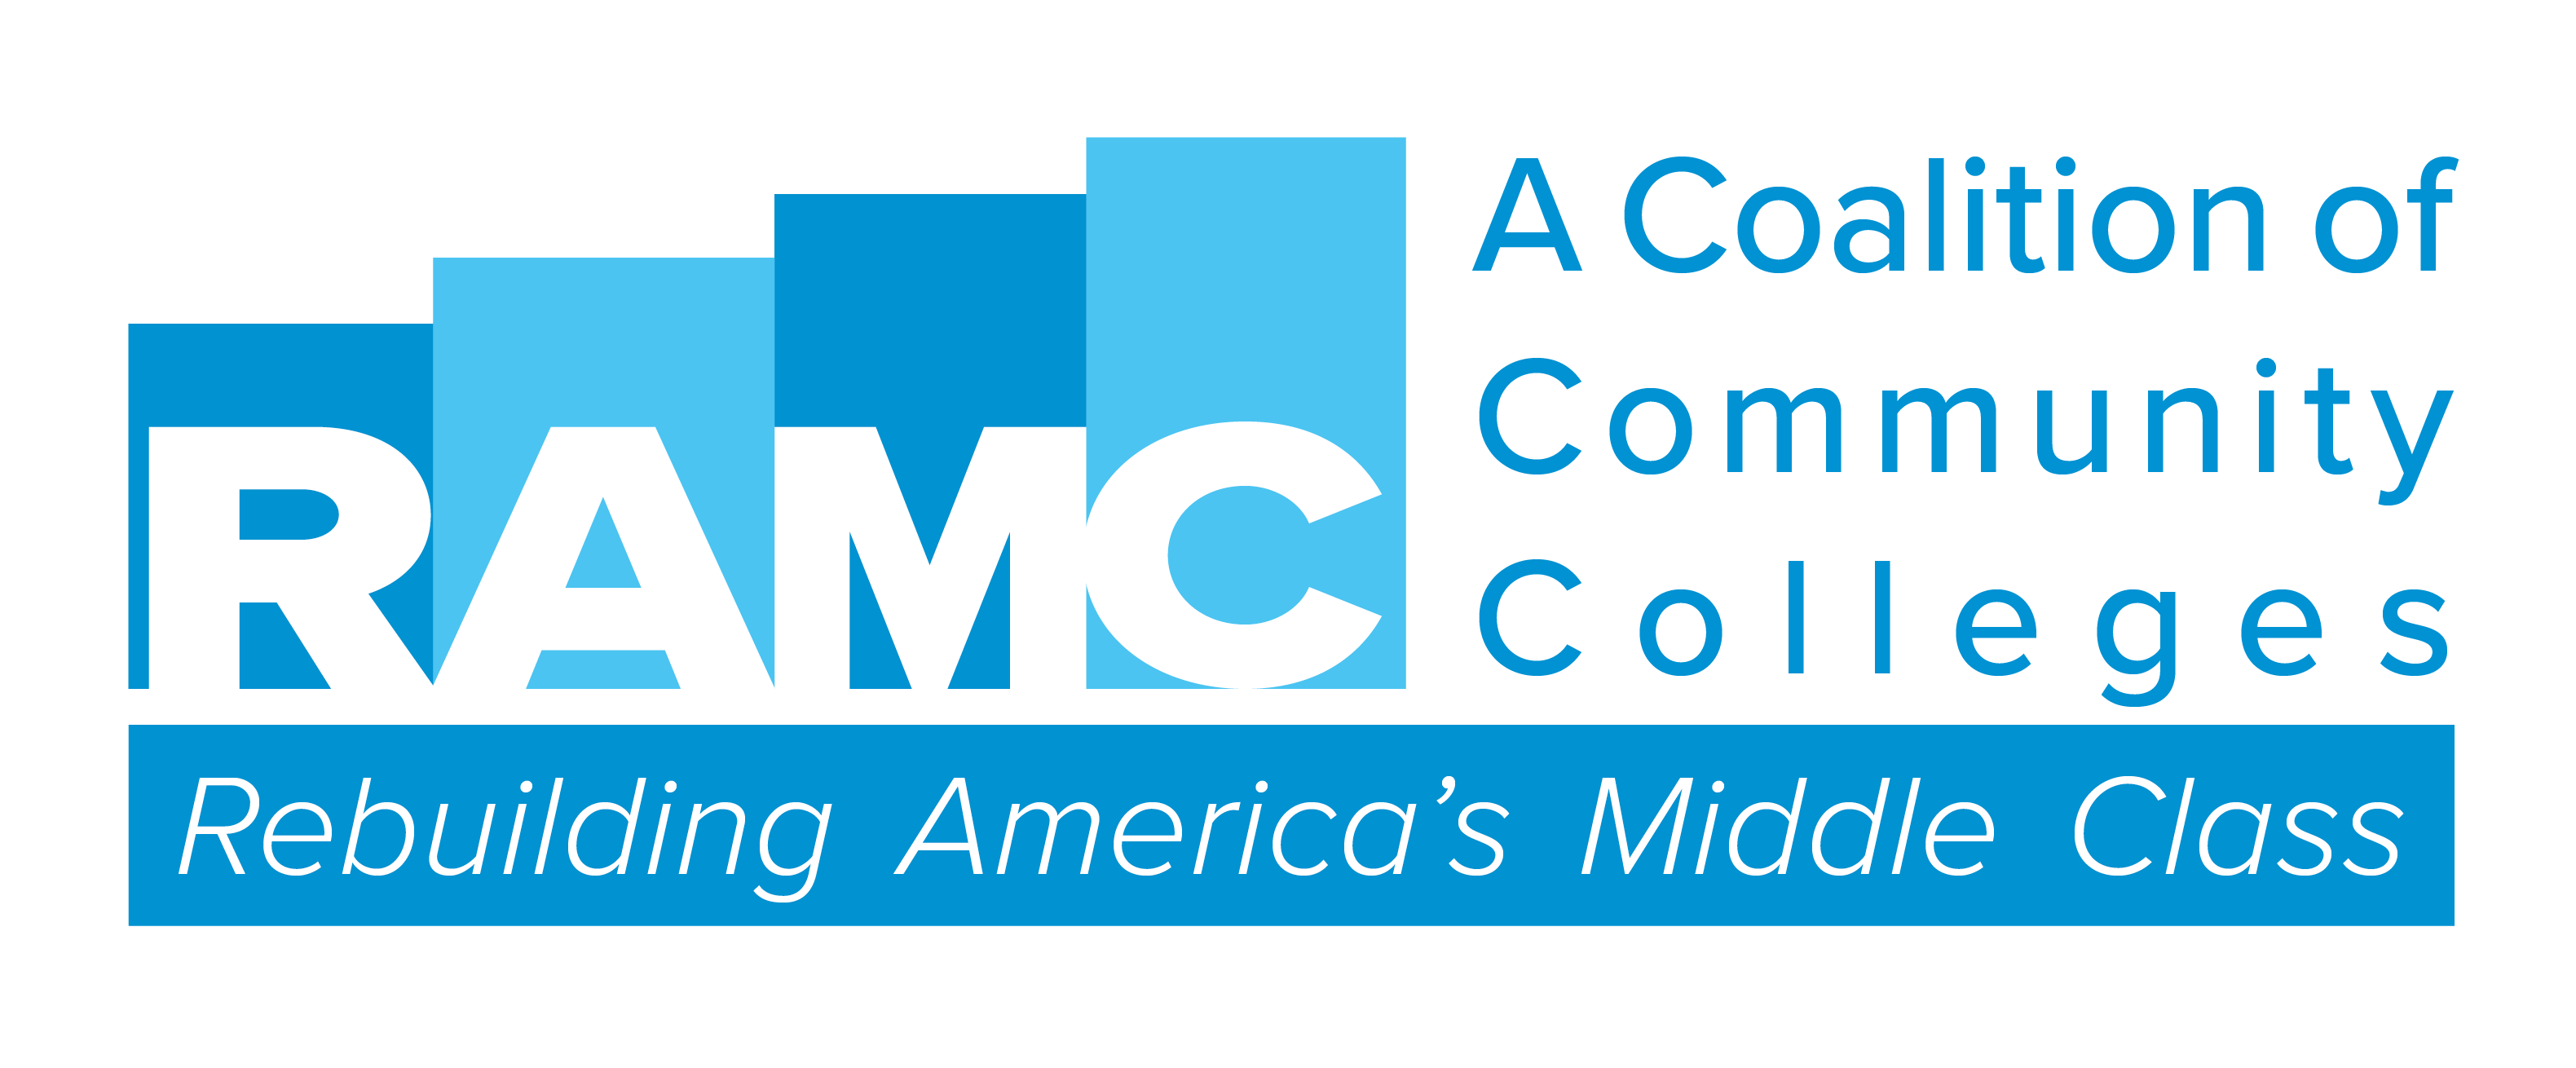 RAMC - Rebuilding America's Middle Class: A Coalition of Community Colleges